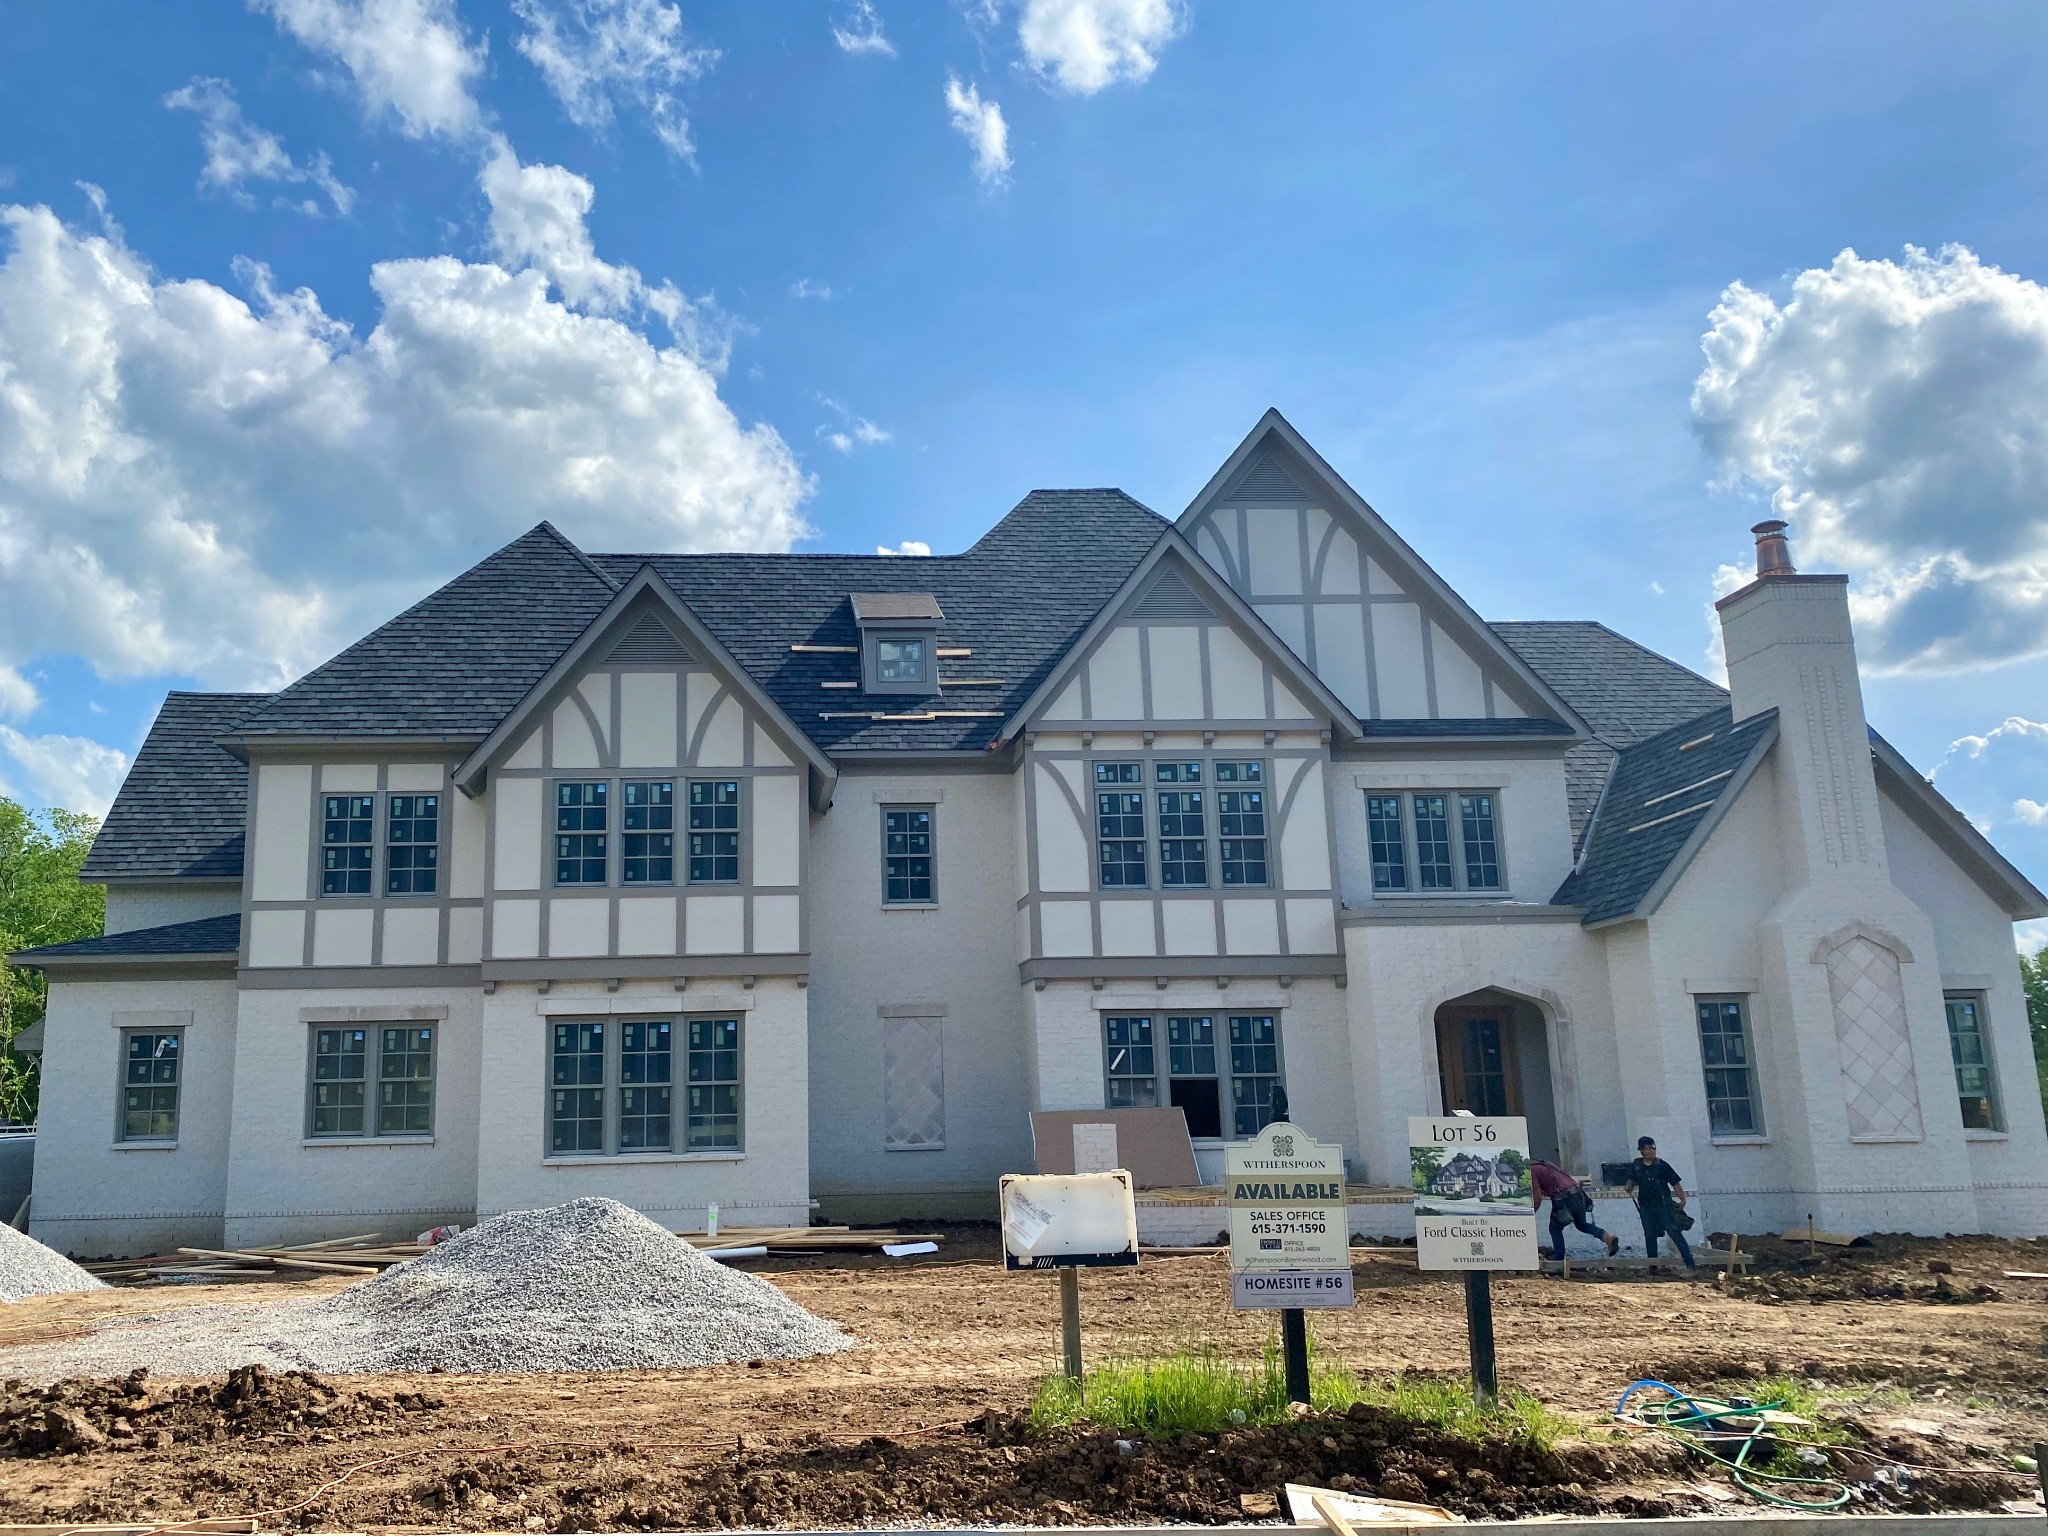 9287 Fordham Dr (Lot #56), Brentwood, TN 37027 - Brentwood, TN real estate listing